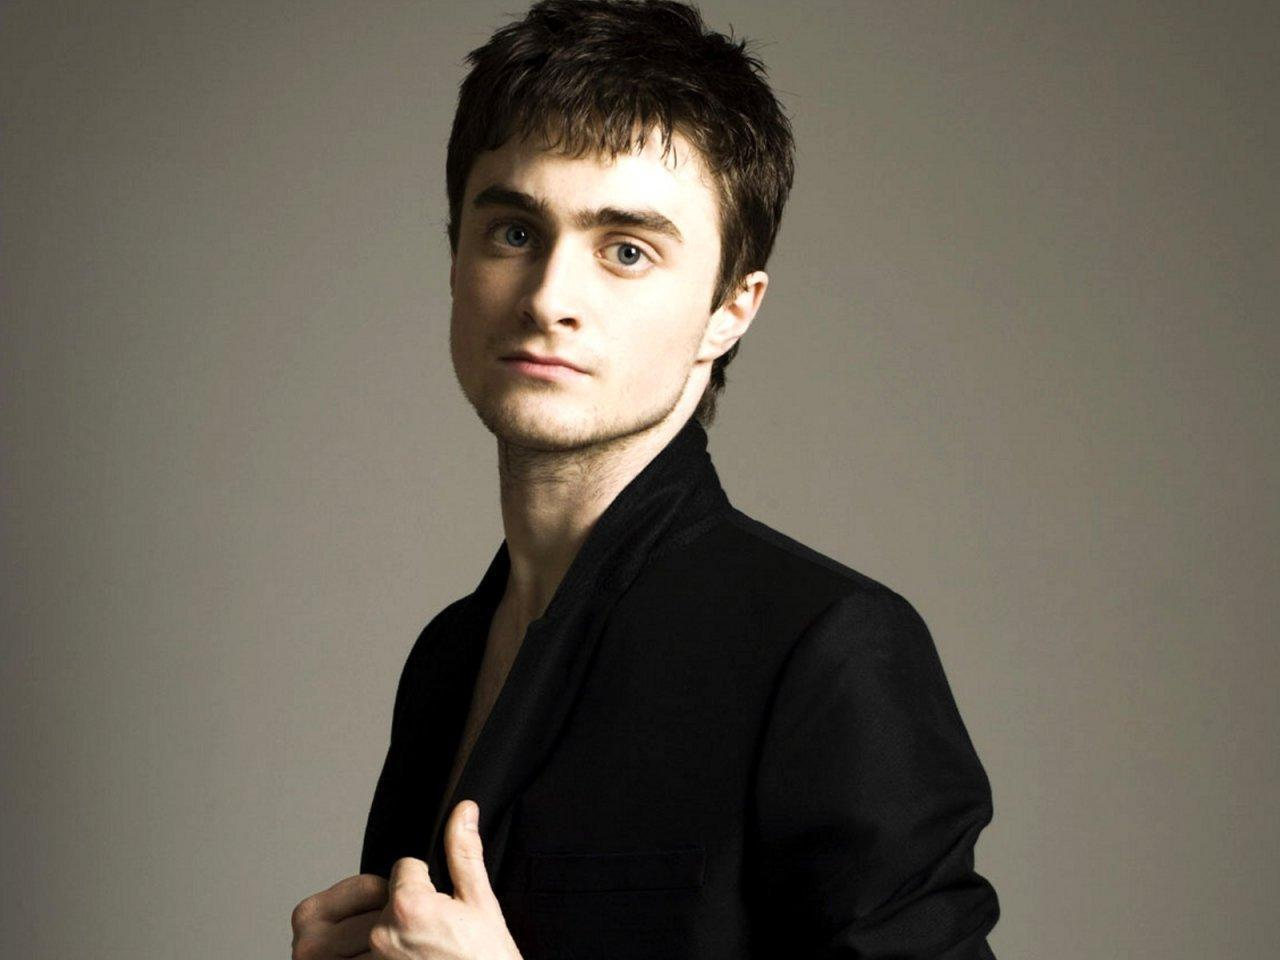 daniel radcliffe wallpapers photos - photo #20